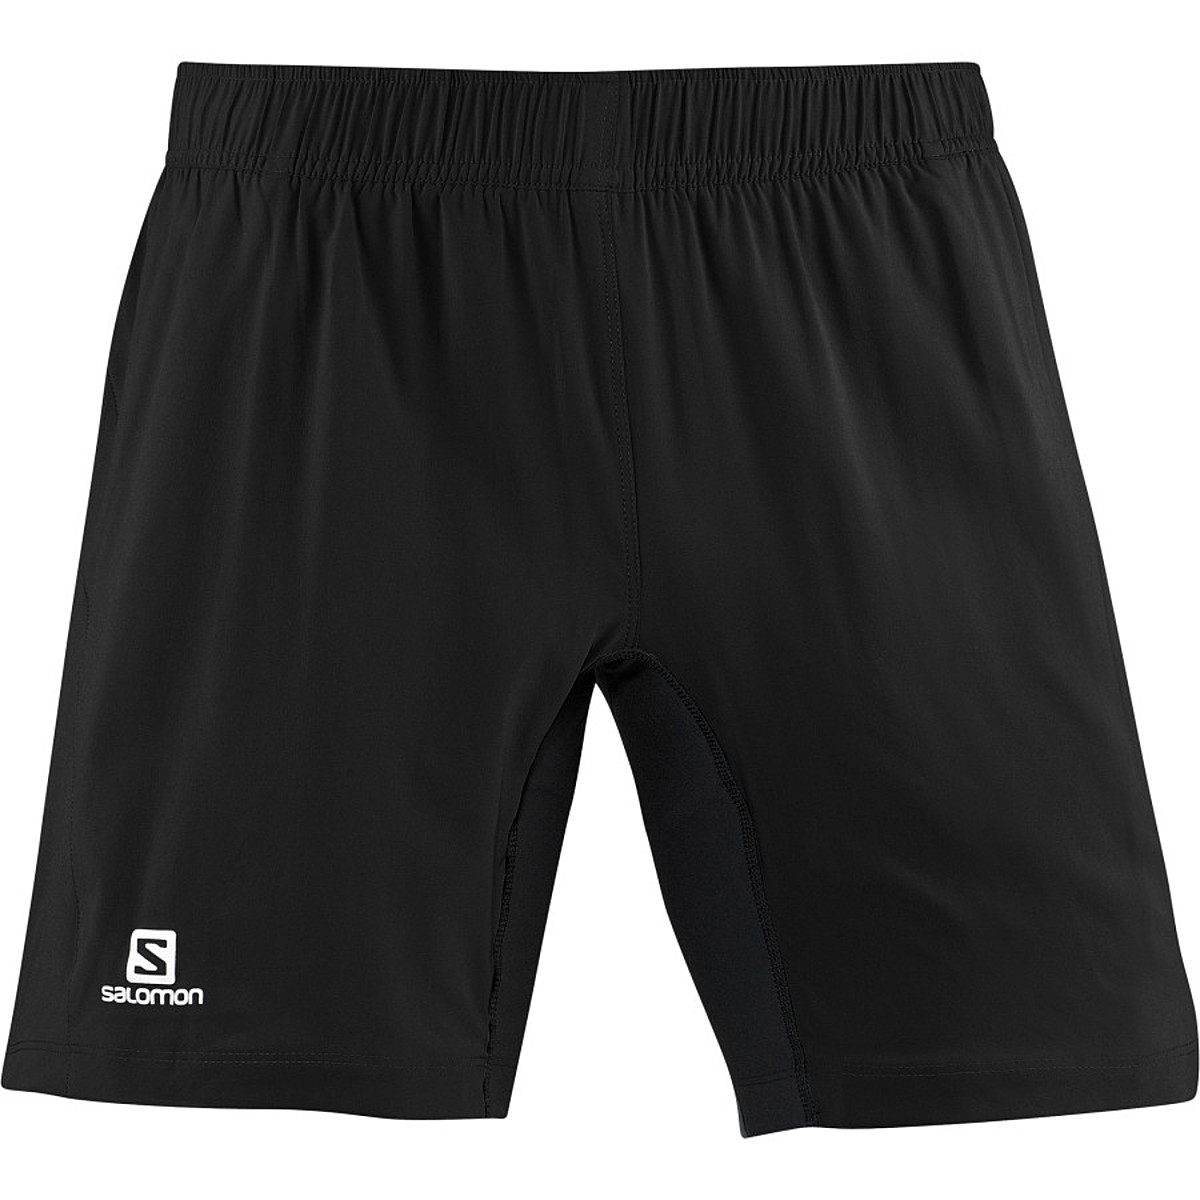 Salomon Trail Twinskin Short